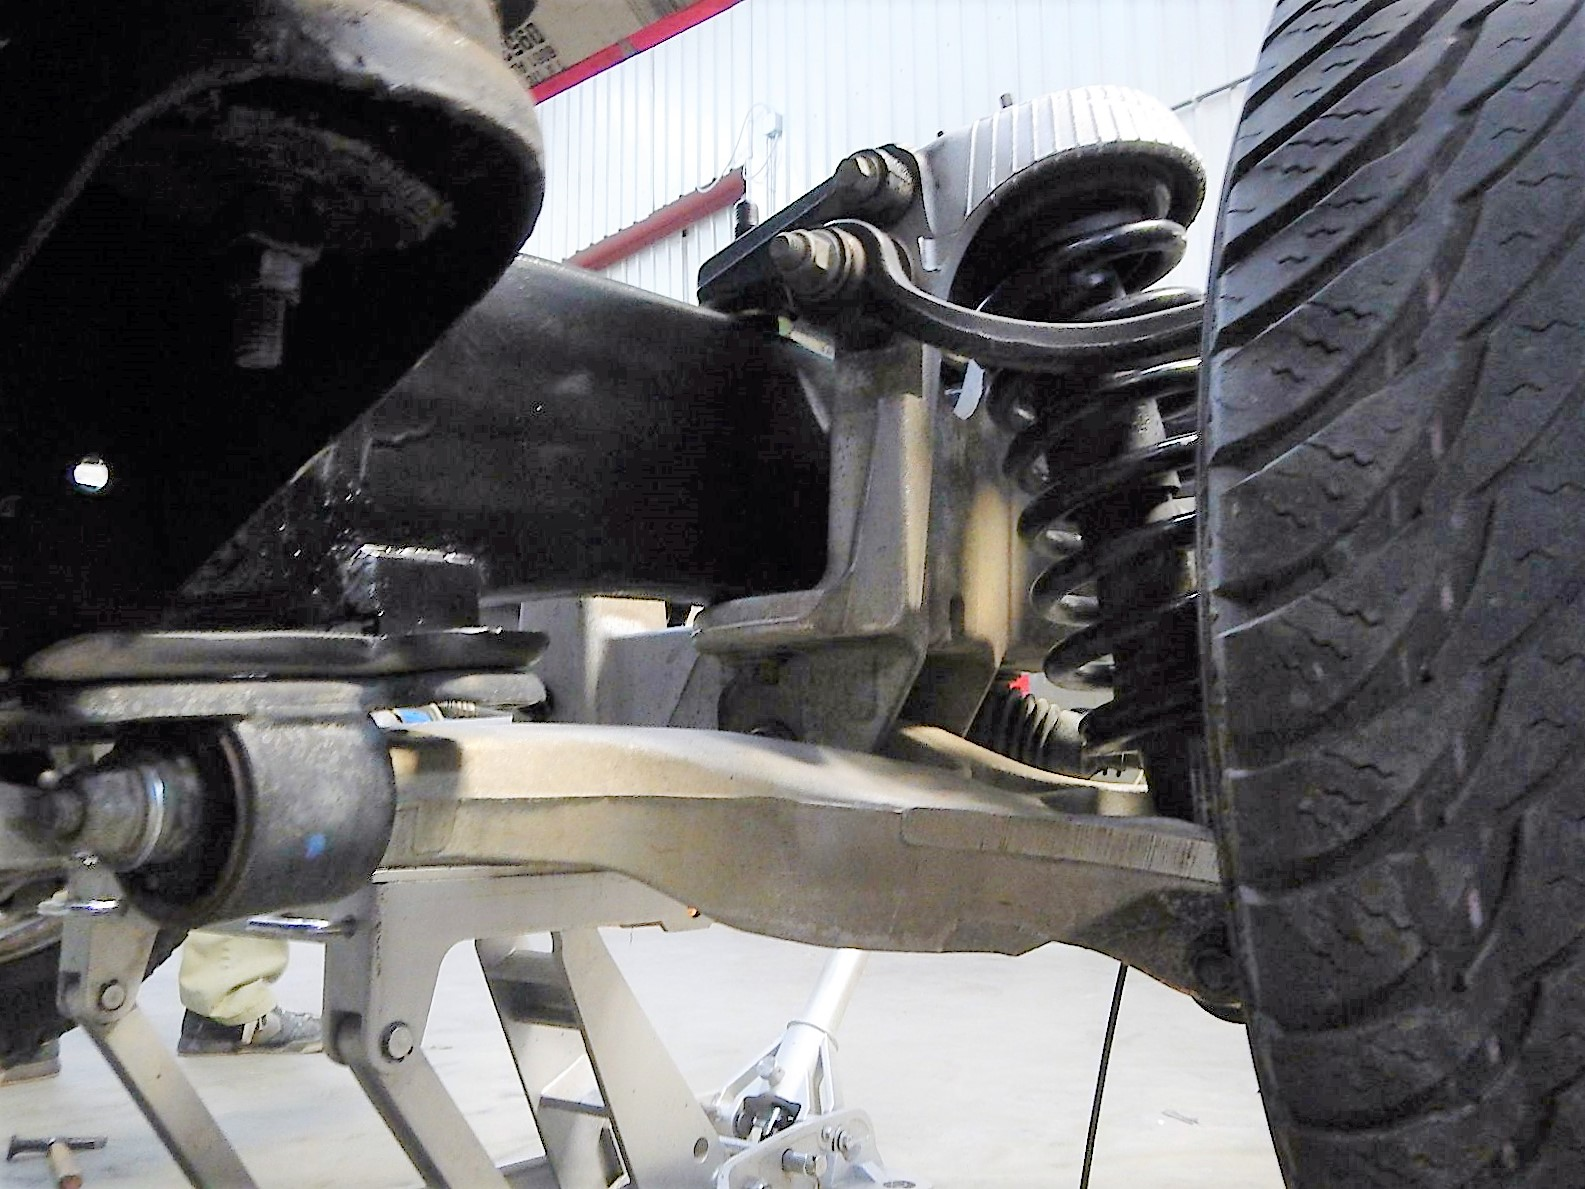 1968 Ford F-100 Front End Swap - Mercury Crown Vic  077.jpg